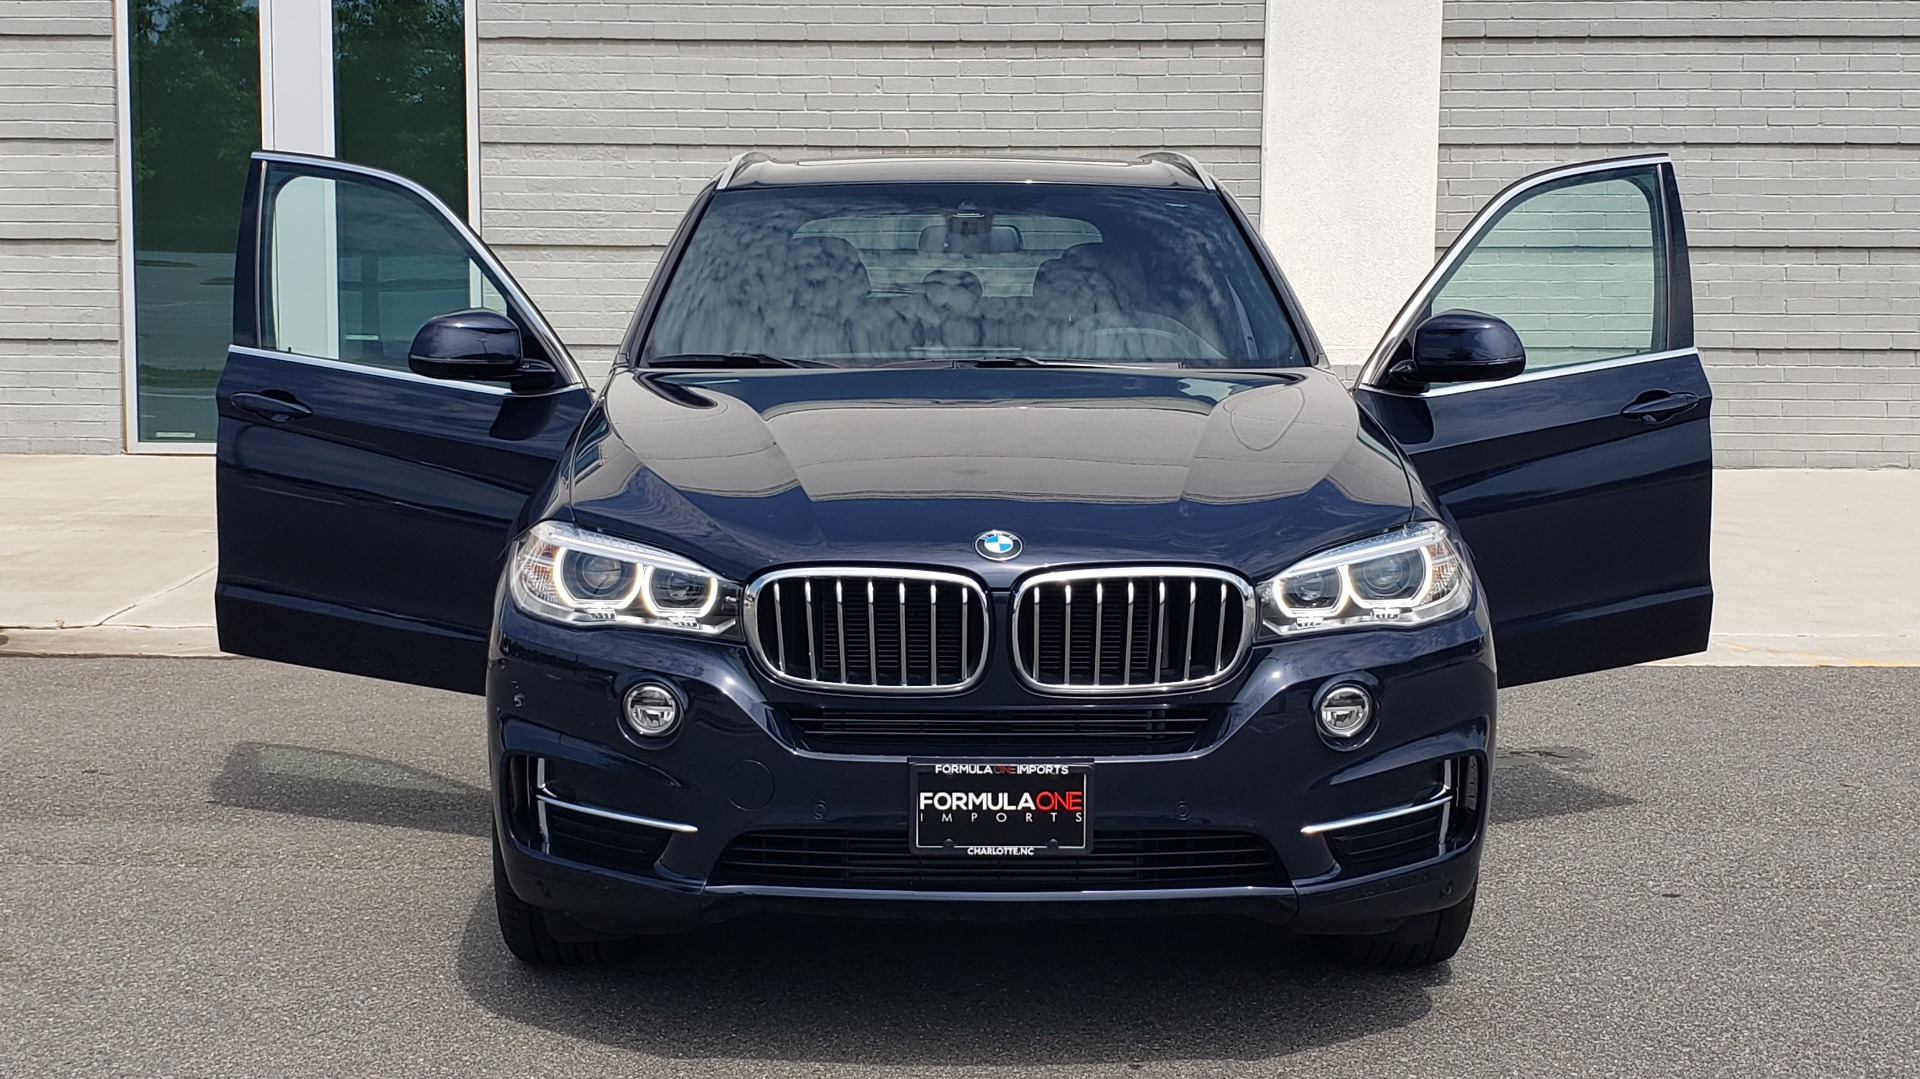 Used 2018 BMW X5 XDRIVE35I PREMIUM / LUXURY / DRVR ASST / HUD / LANE WARNING / REARVIEW for sale $43,695 at Formula Imports in Charlotte NC 28227 25